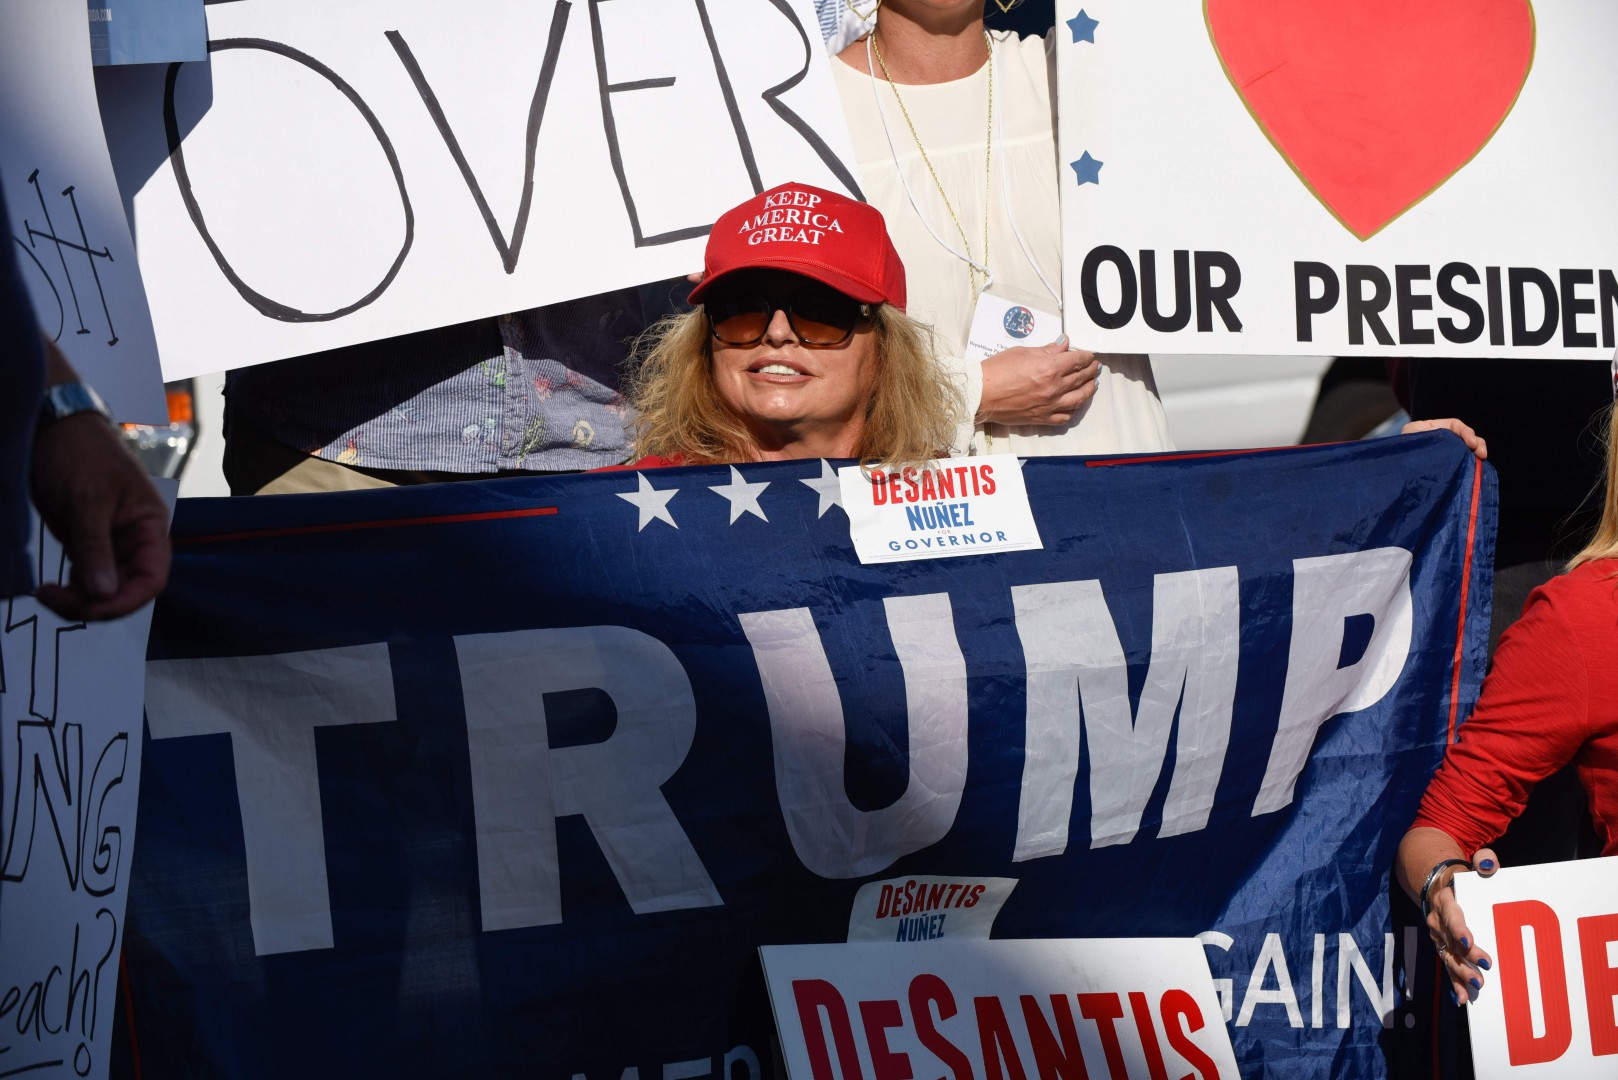 Republican Supporters gather on November 15, 2018, as Palm Beach County did not meet the midterm recount deadline in West Palm Beach, Florida. - Final results have yet to be declared in multiple races following last week's midterm polls, with tense recounts underway in Florida. (Photo by Michele Eve Sandberg / AFP)